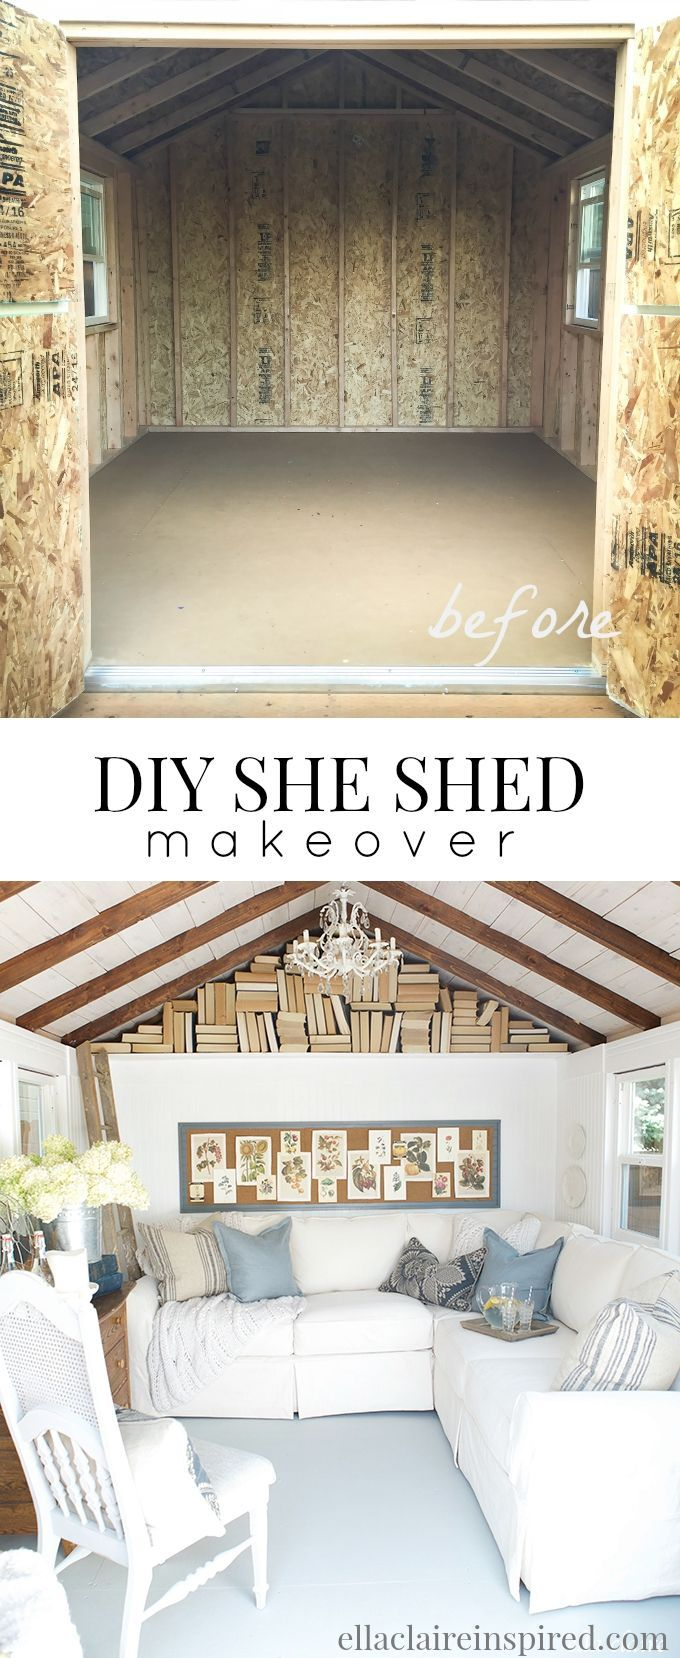 She Shed Reveal | Cozy, Vintage and Backyard